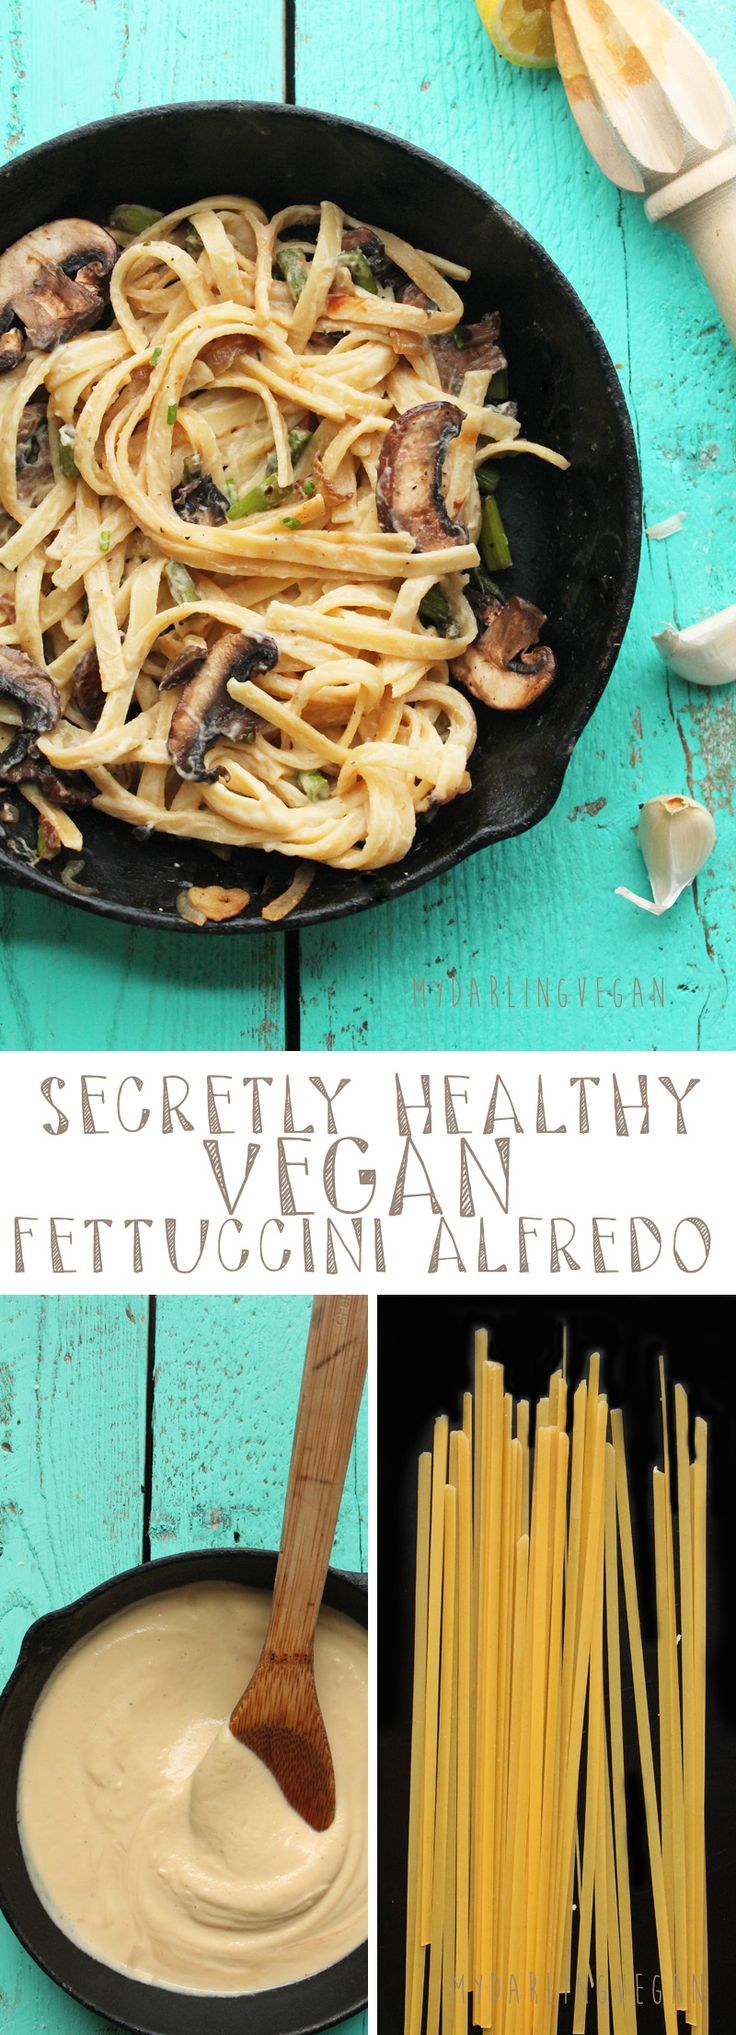 You won't believe that this rich and creamy  Alfredo sauce is actually healthy and 100% vegan. Click the photo to find out the secret ingredient that makes this sauce perfect for the whole family!